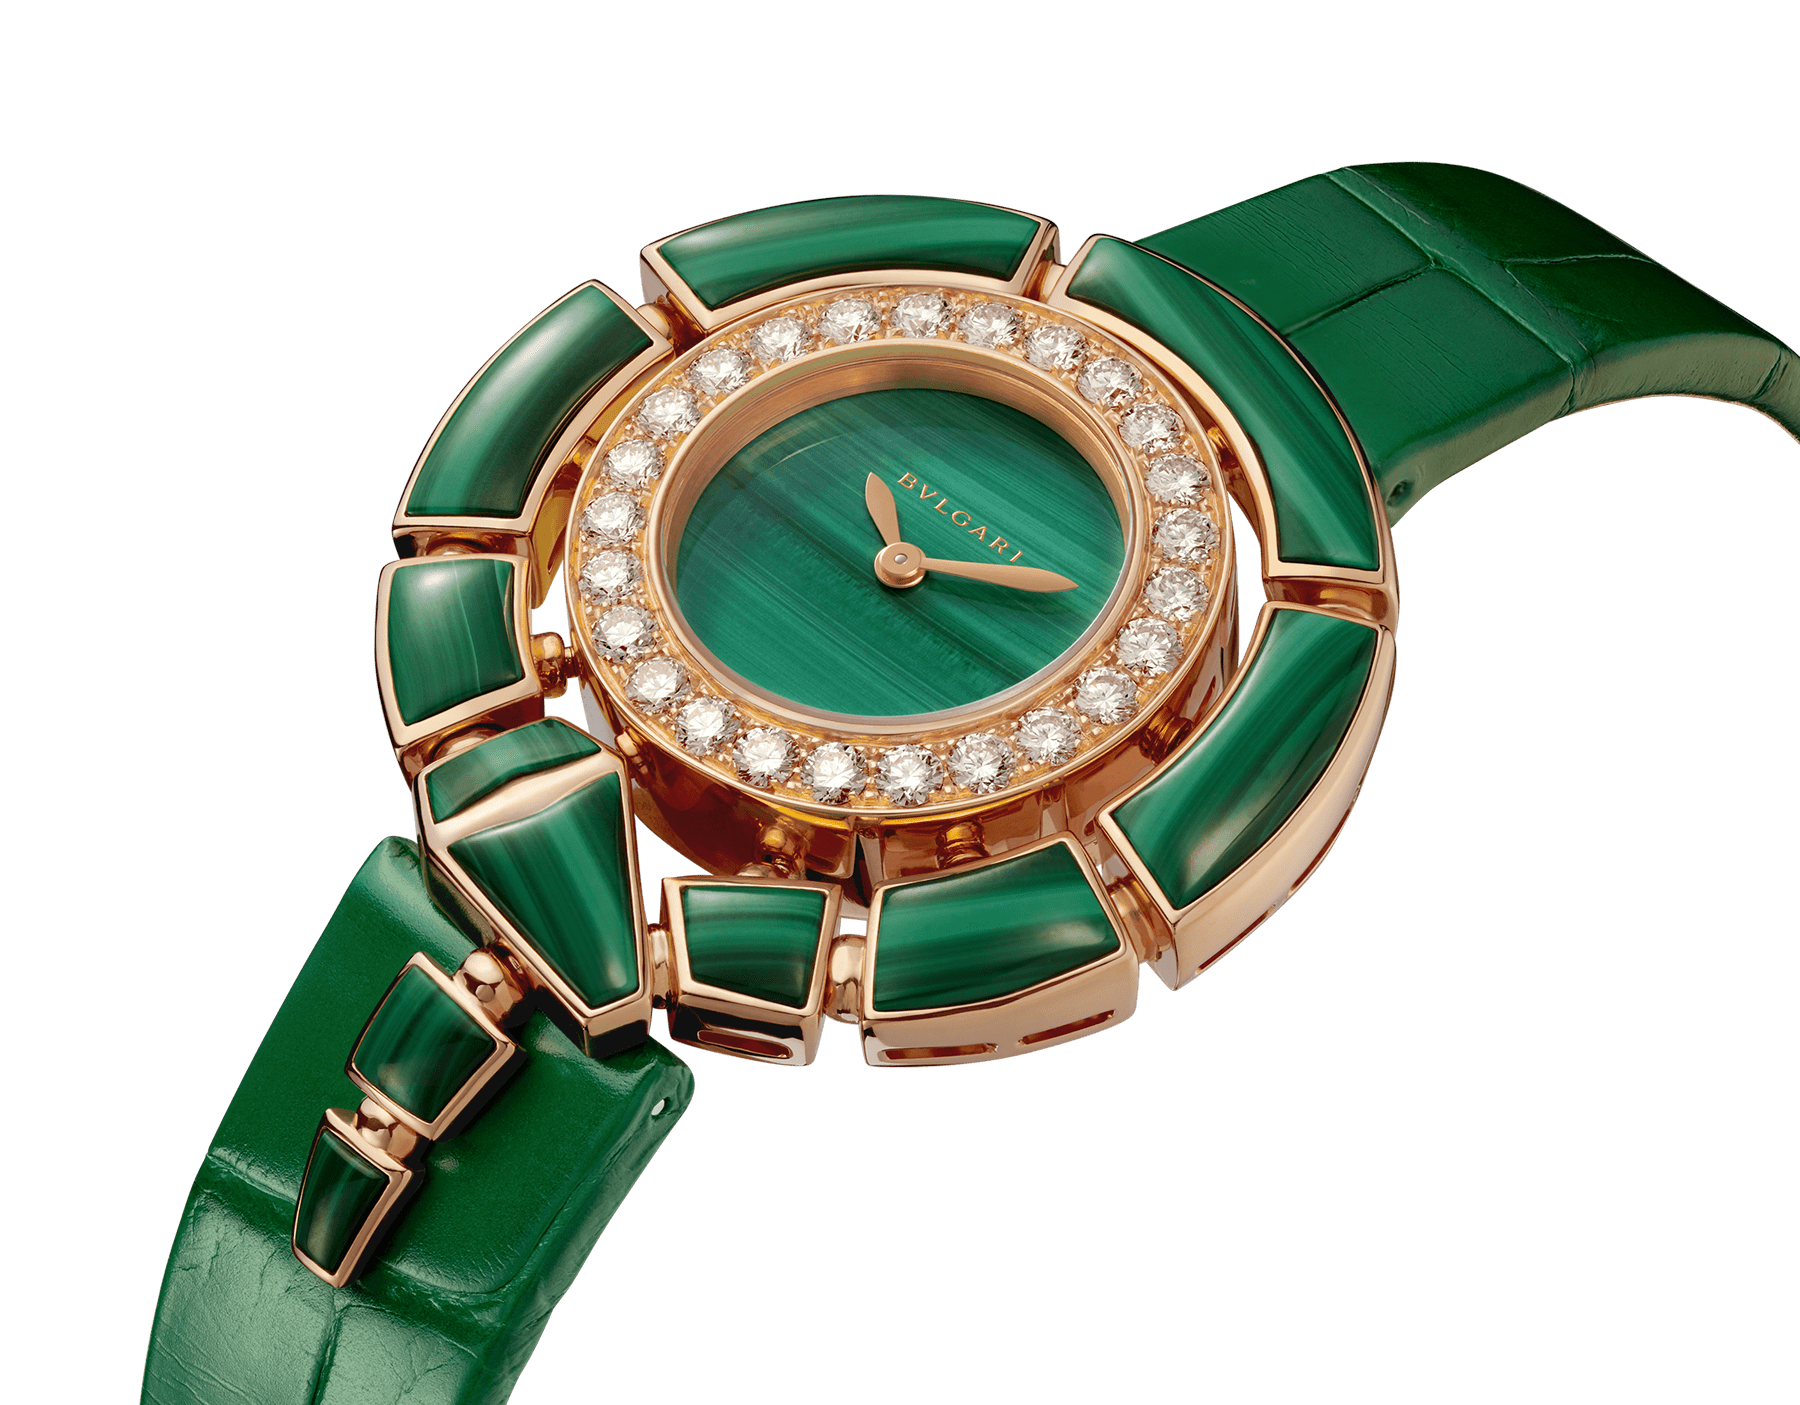 Orologio Serpenti Incantati con cassa in oro rosa 18 kt con diamanti taglio brillante ed elementi in malachite, quadrante in malachite e cinturino in alligatore verde. 102871 image 2